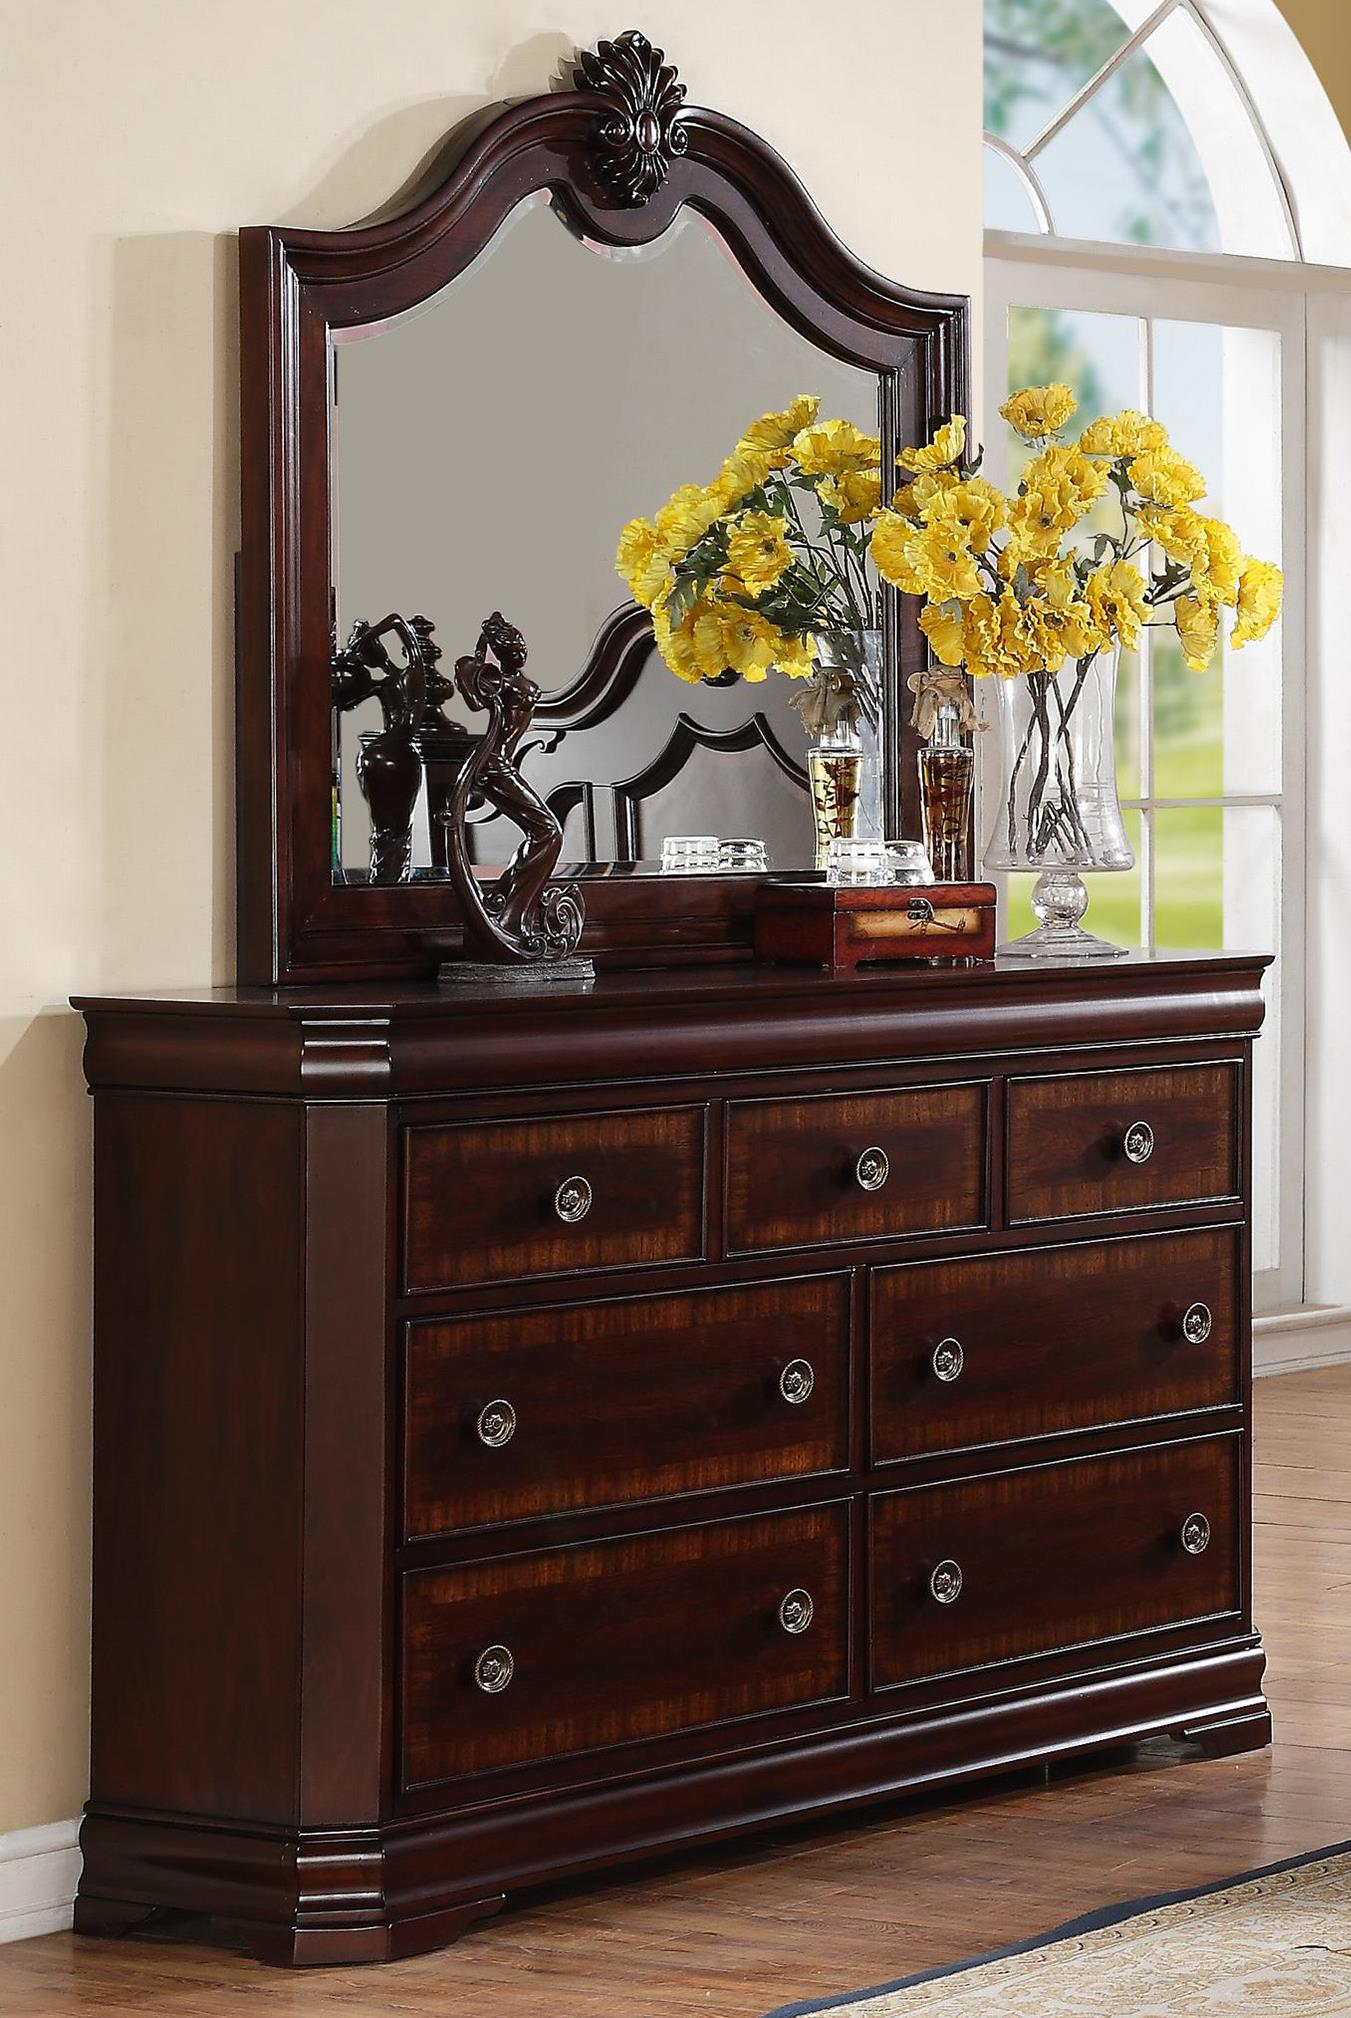 Charlotte Dresser and Mirror Combo by Crown Mark at Northeast Factory Direct